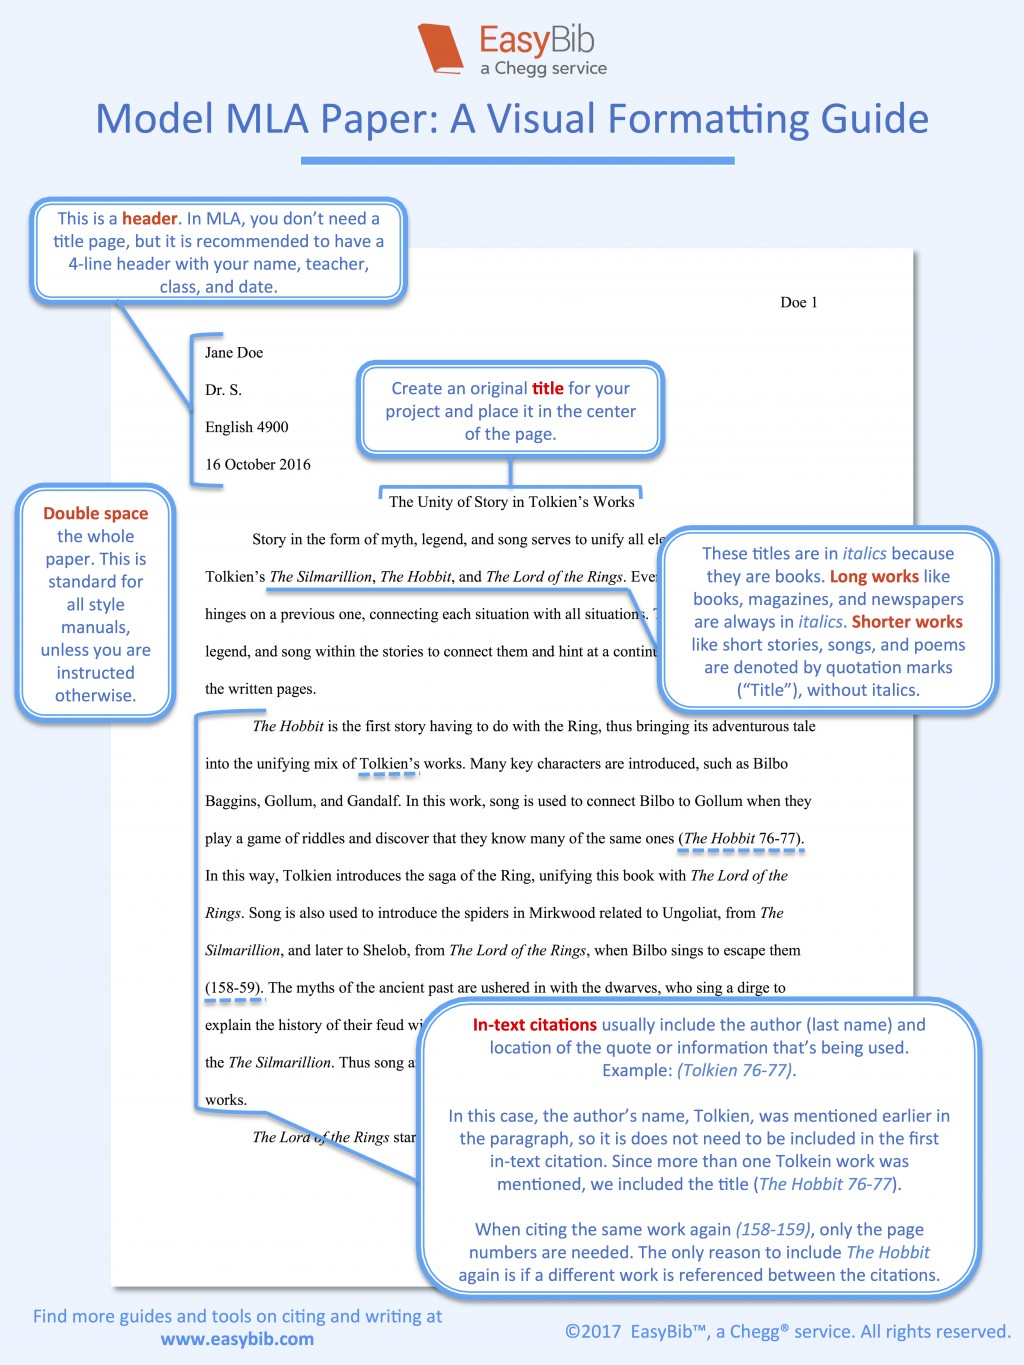 002 Research Paper How To Cite Book In Mla Format Model Rare A Large